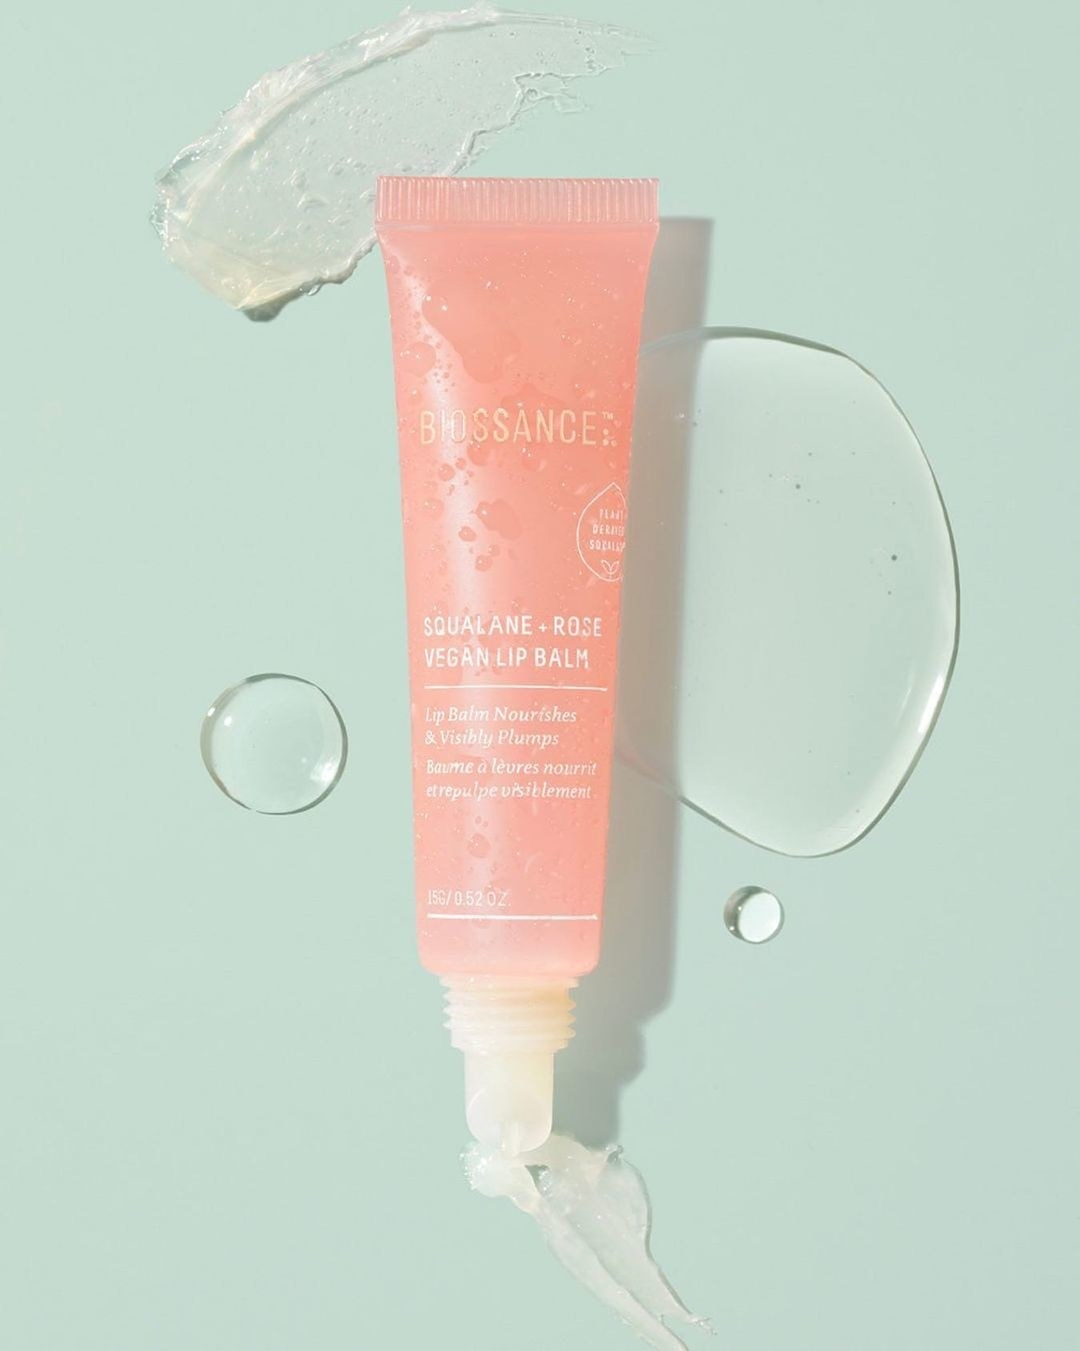 A tube of the lip balm on a simple background next to a smear of the product to show texture